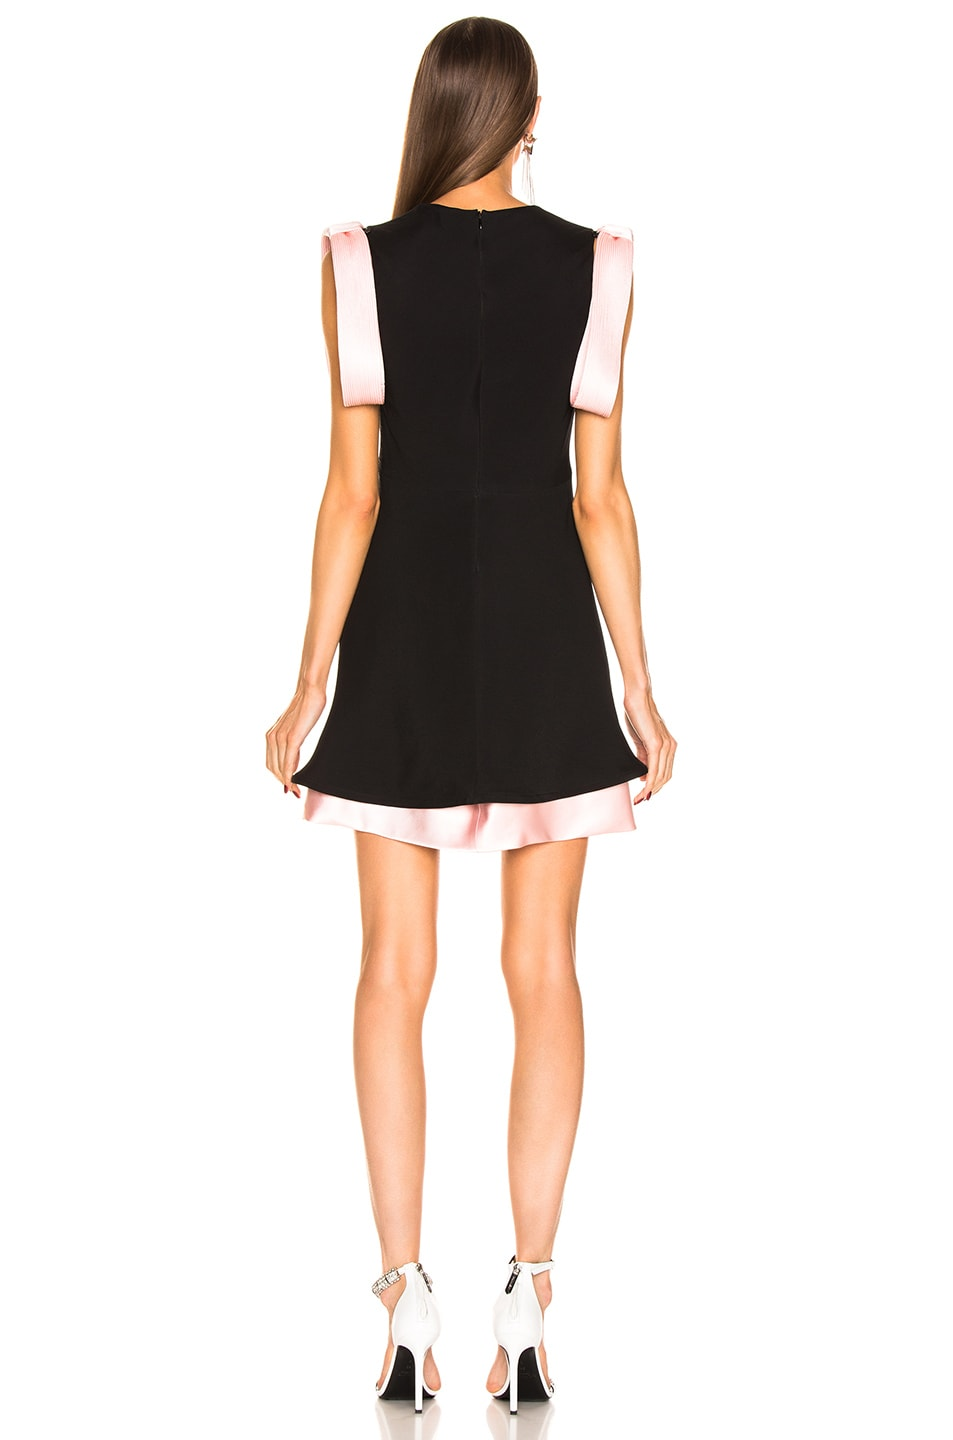 Image 3 of CALVIN KLEIN 205W39NYC Two Tone Dress in Black Pink